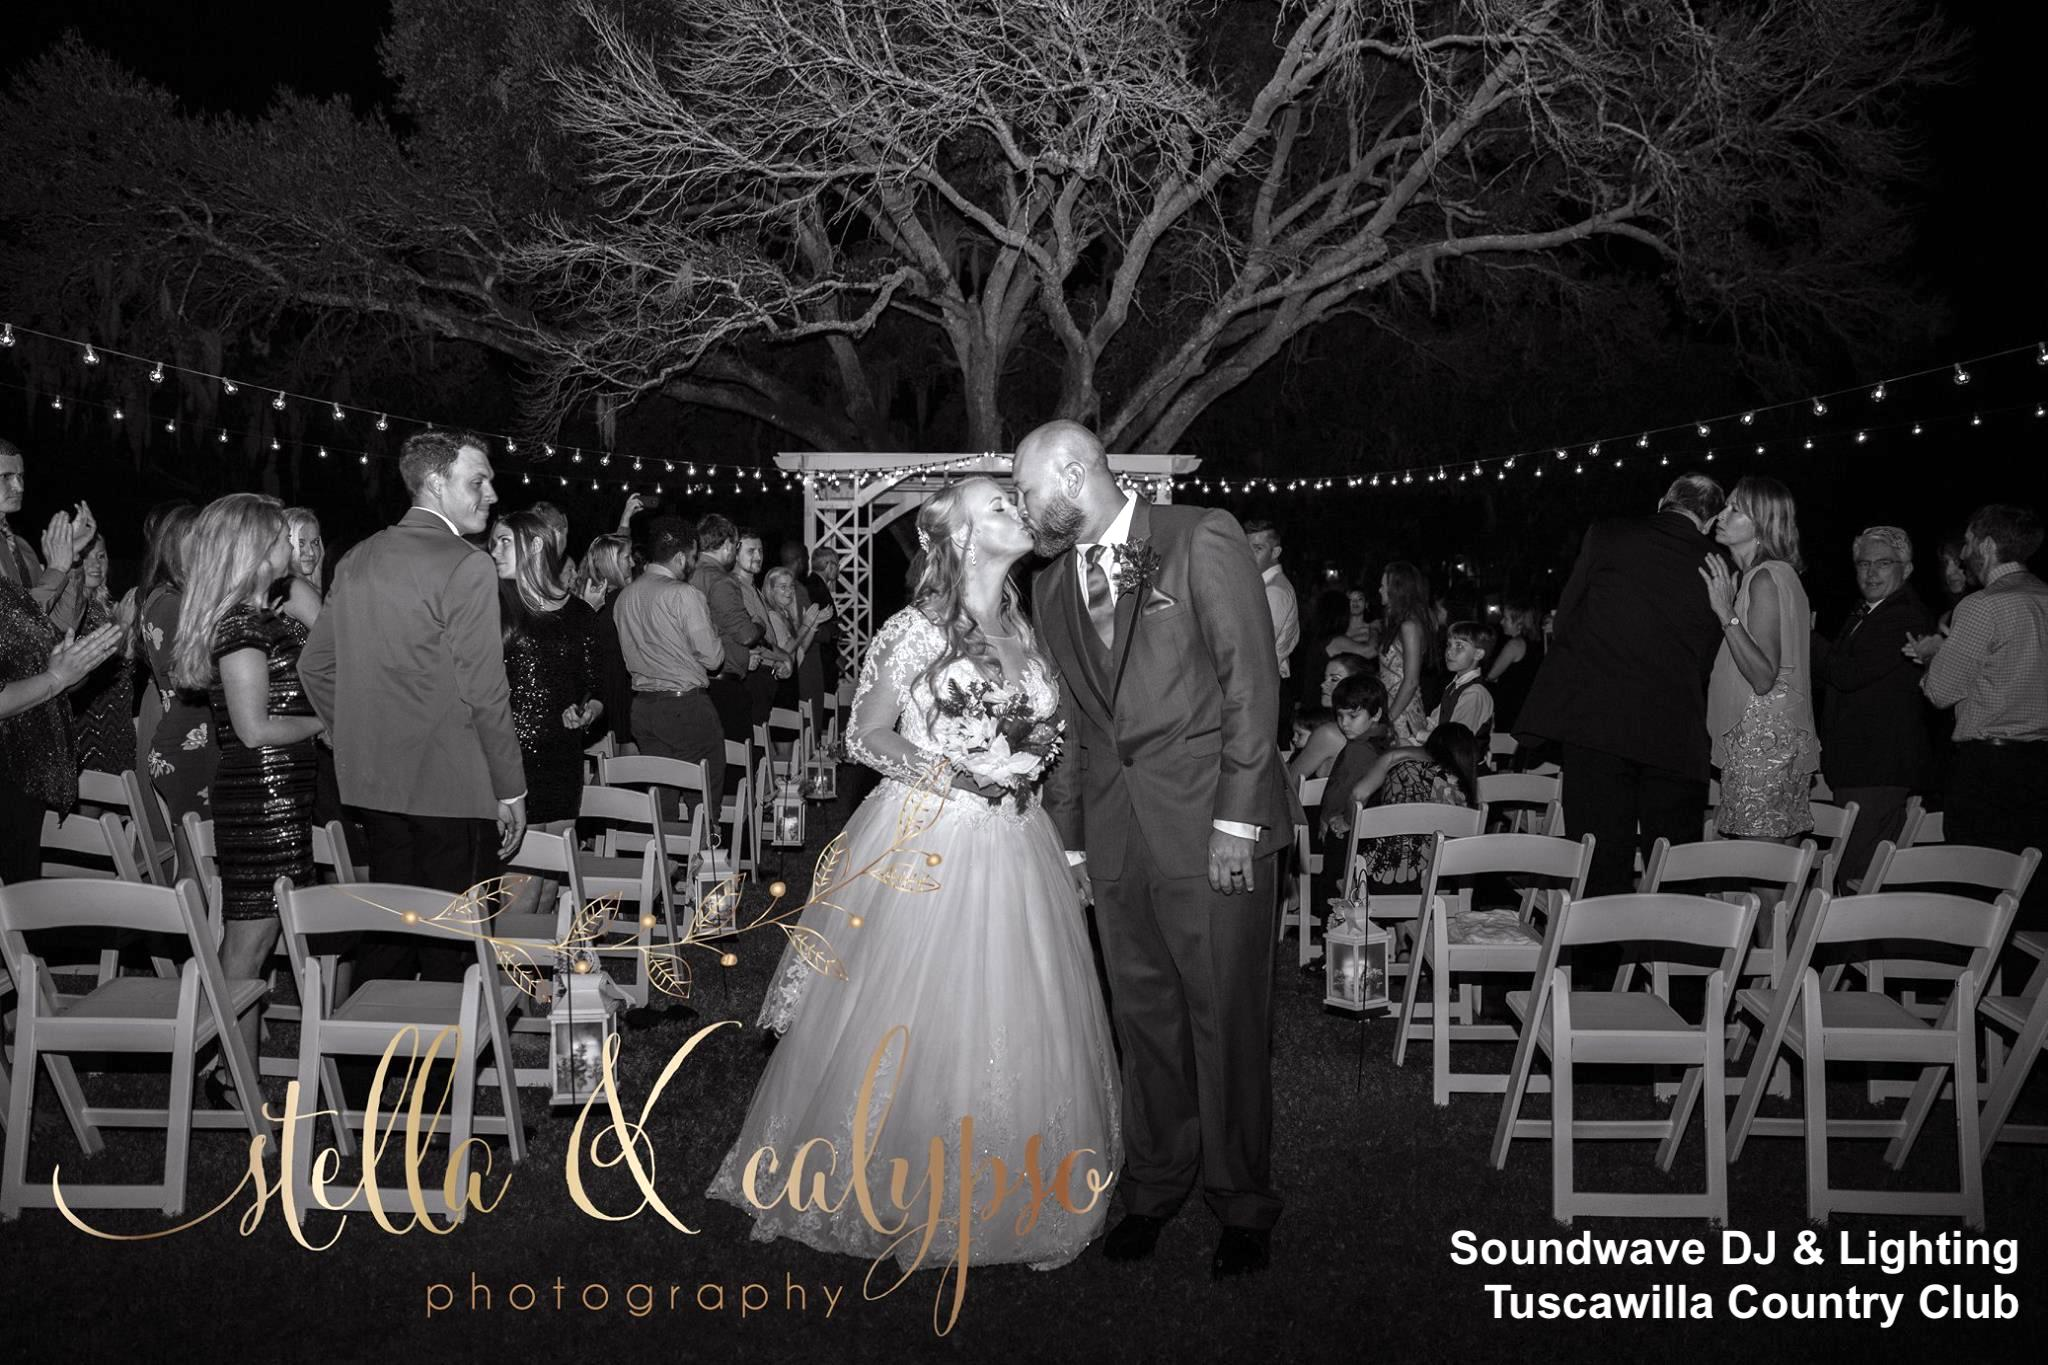 tuscawilla country club - orlando wedding venue - orlando wedding dj - orlando wedding lighting - soundwave entertainment